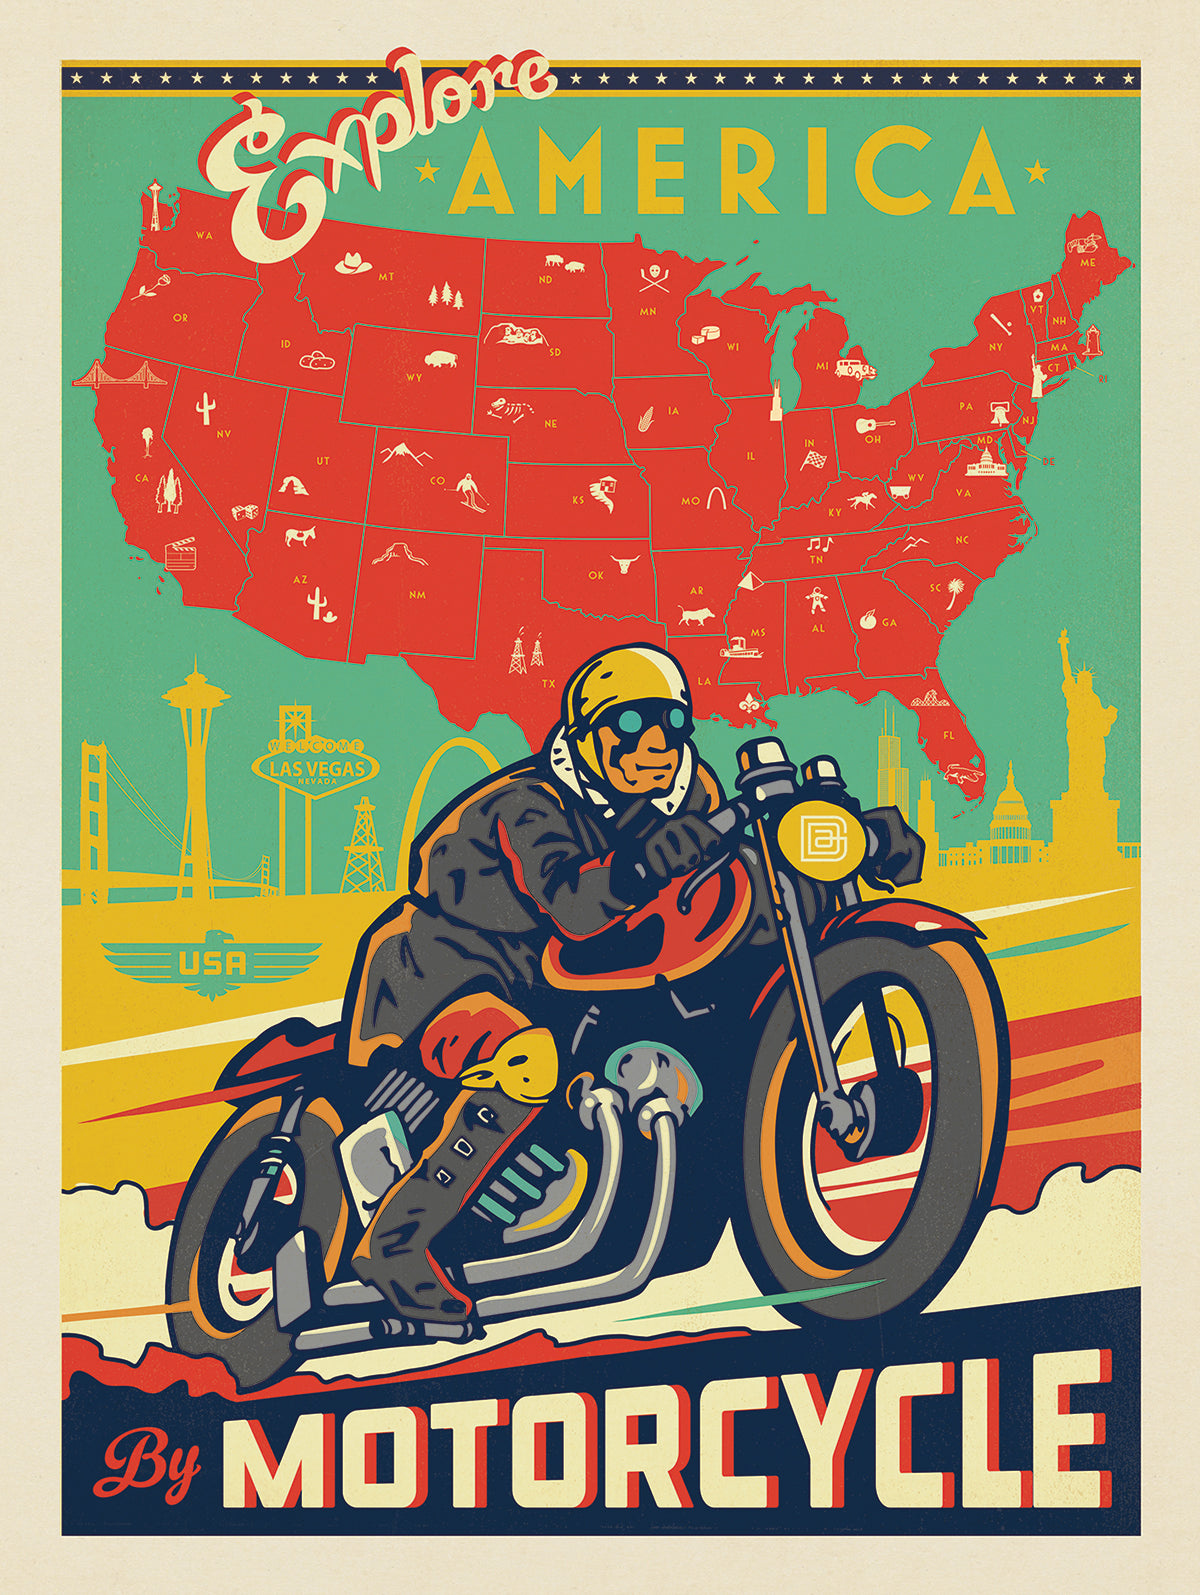 Vintage Poster Art to Inspire Your Next Road Trip